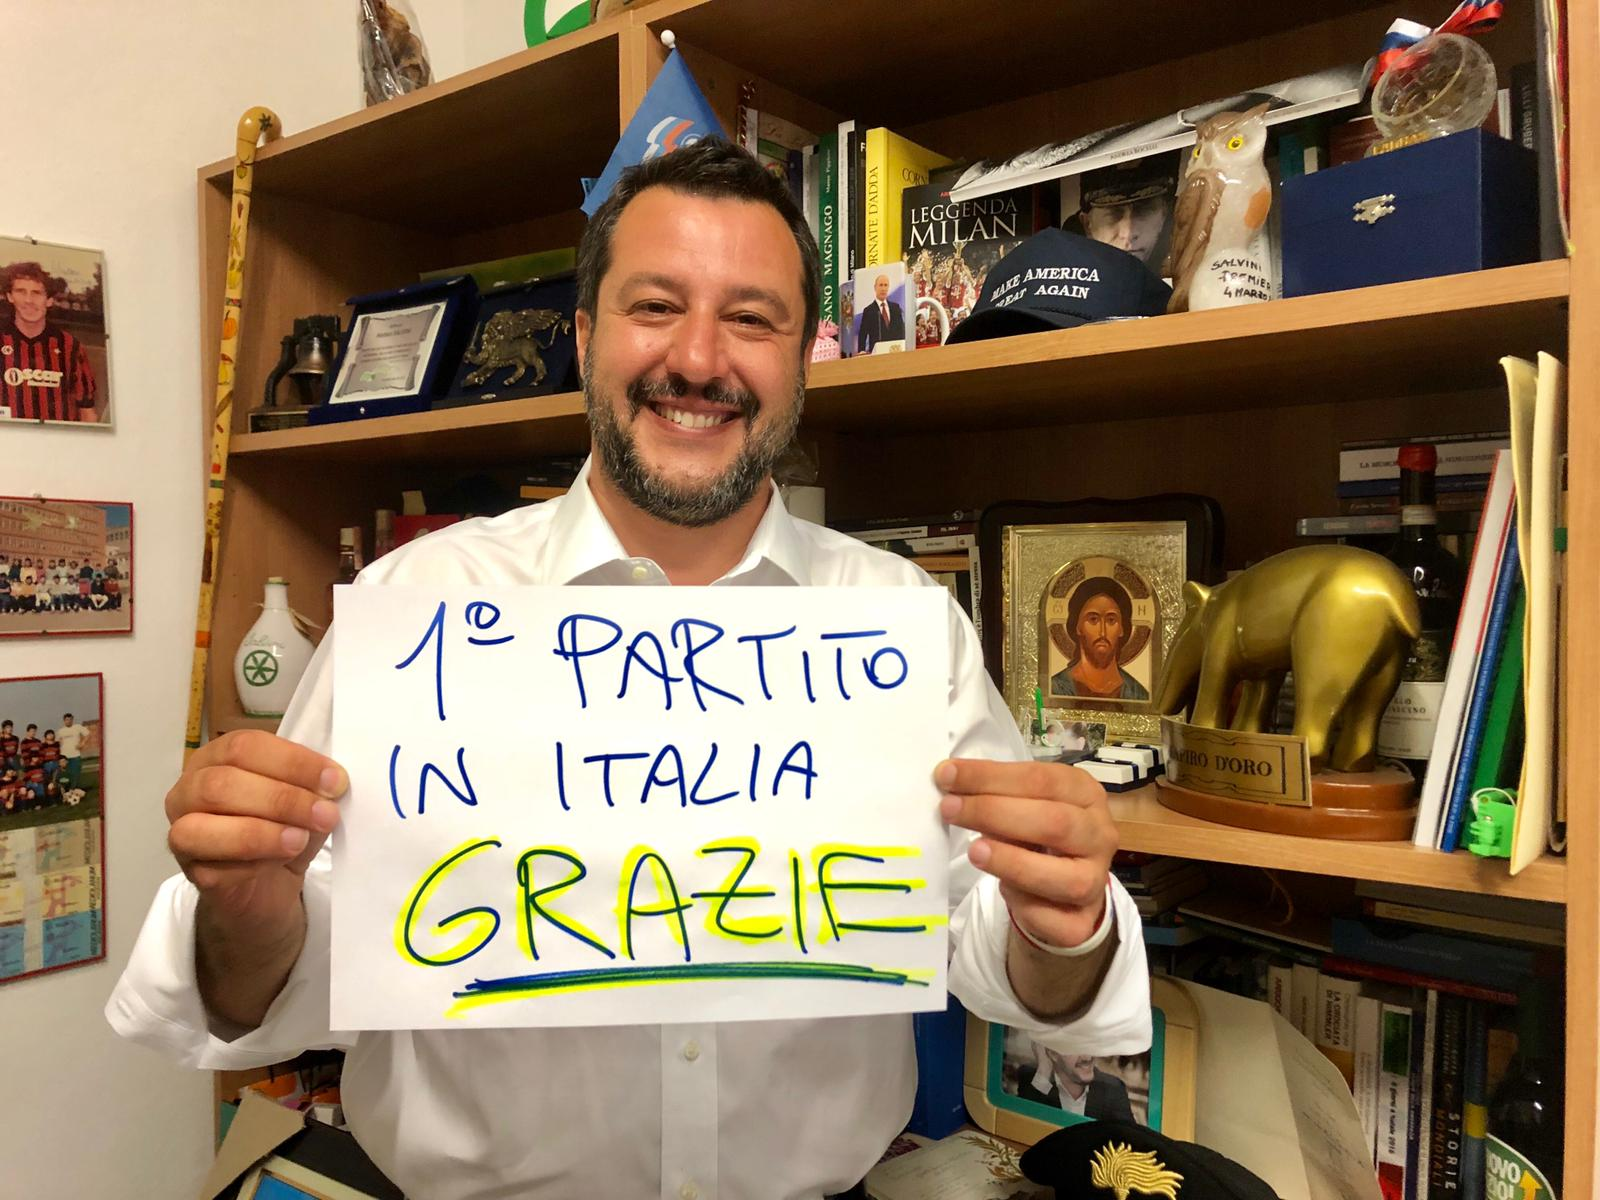 Matteo Salvini holds up a piece of paper that thanks voters.